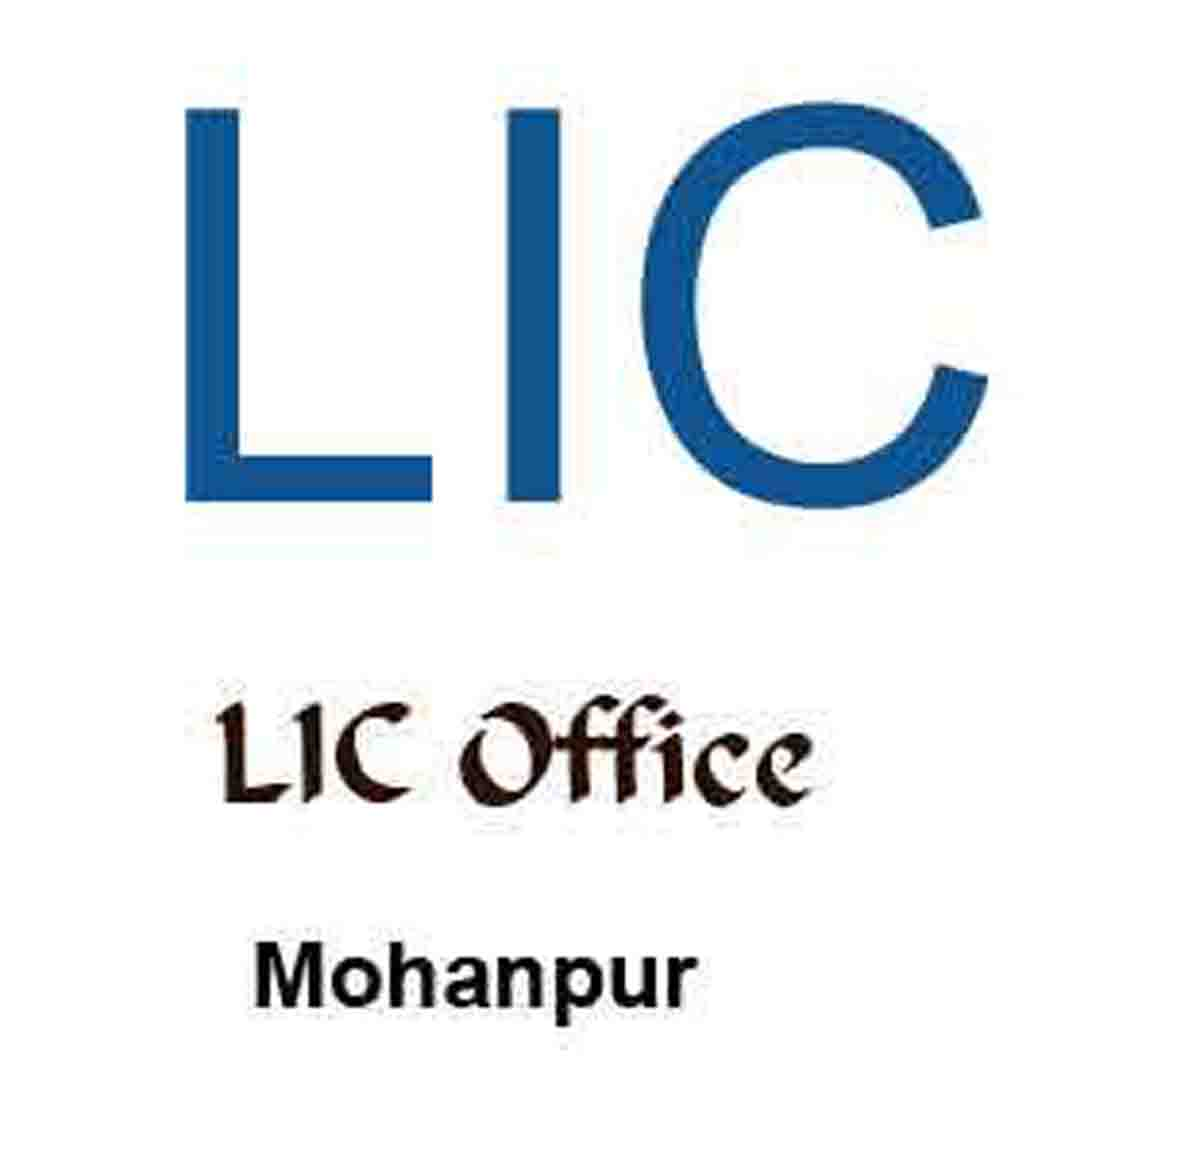 lic office mohanpur